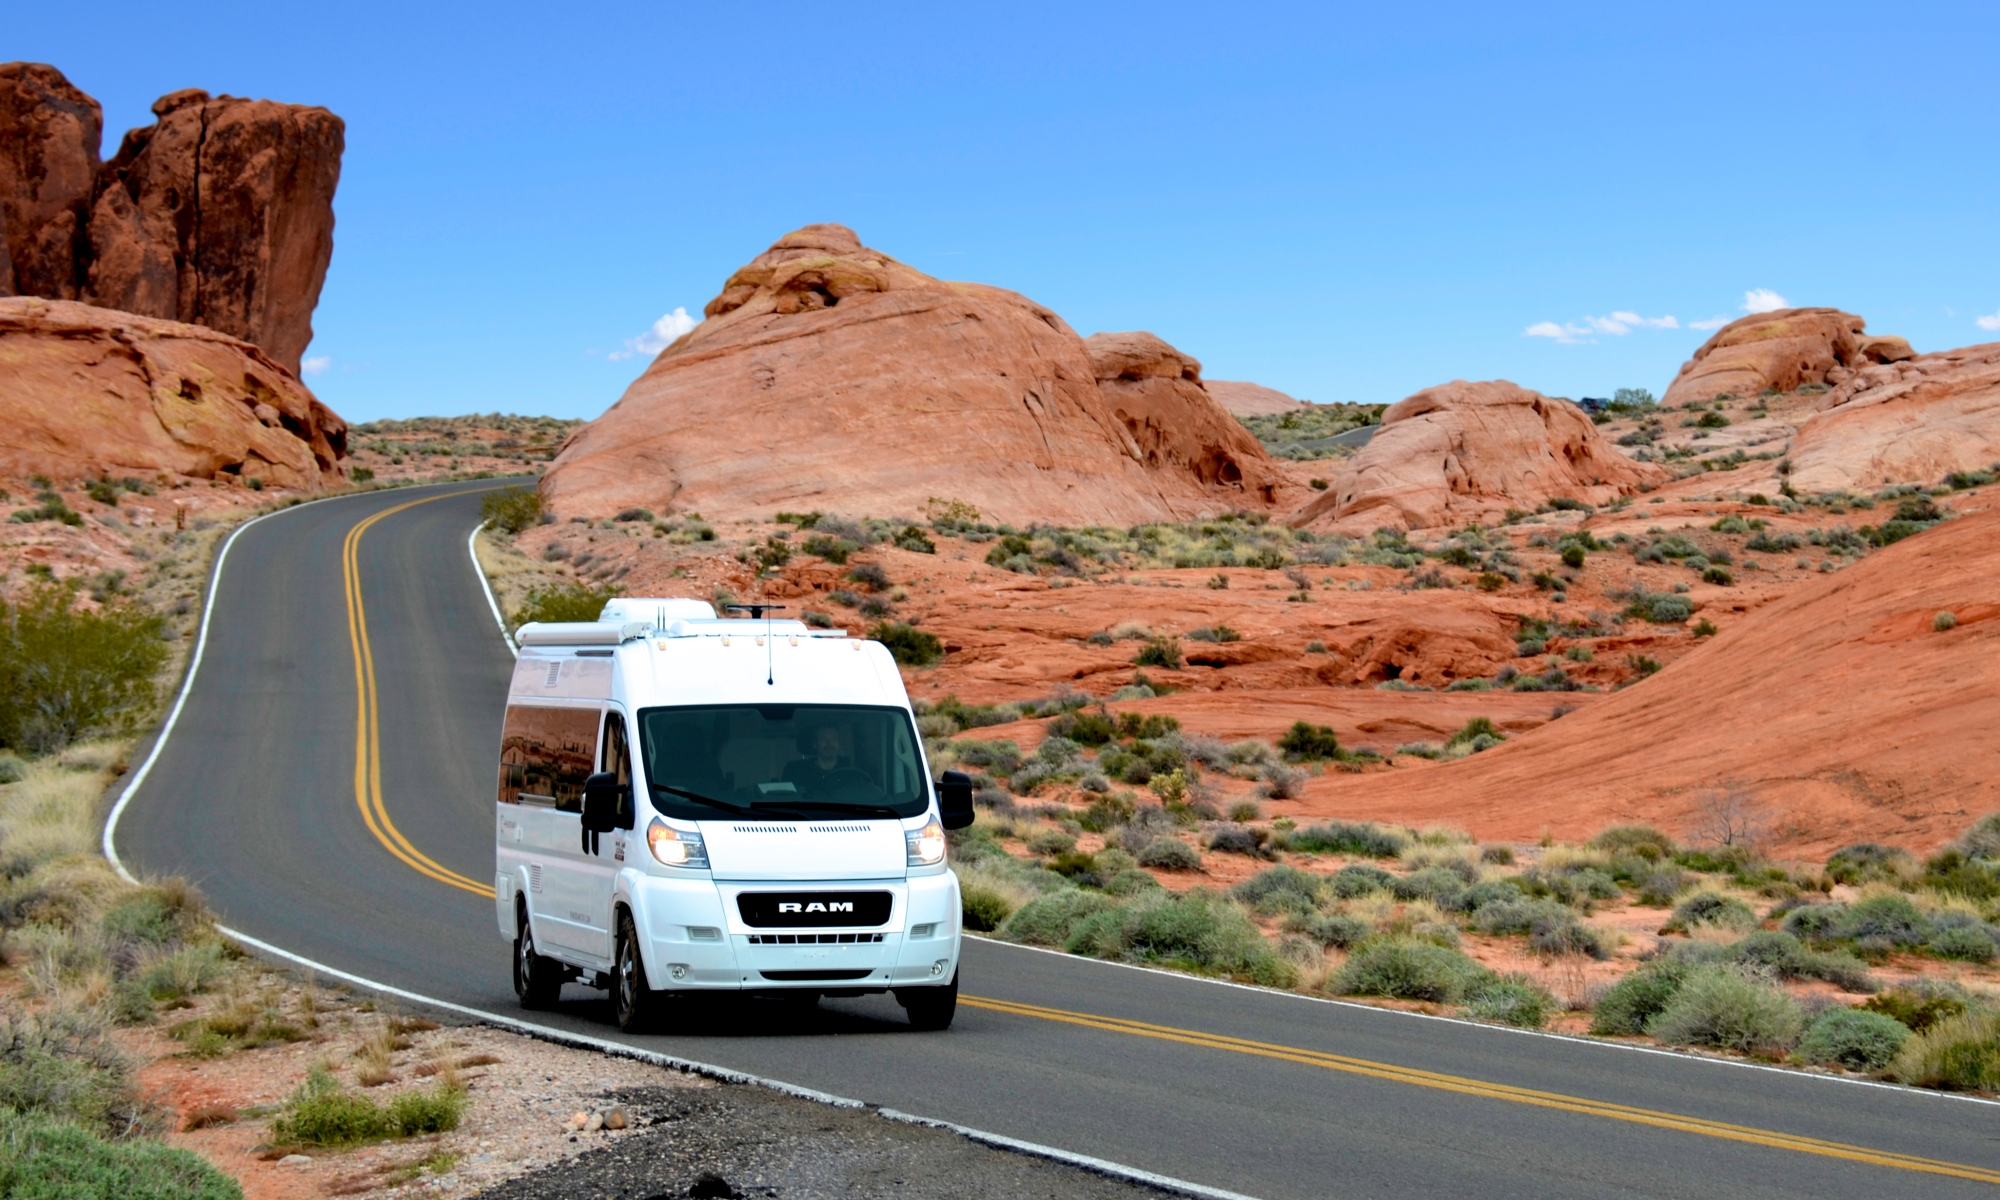 Panoramic RV - Valley of Fire